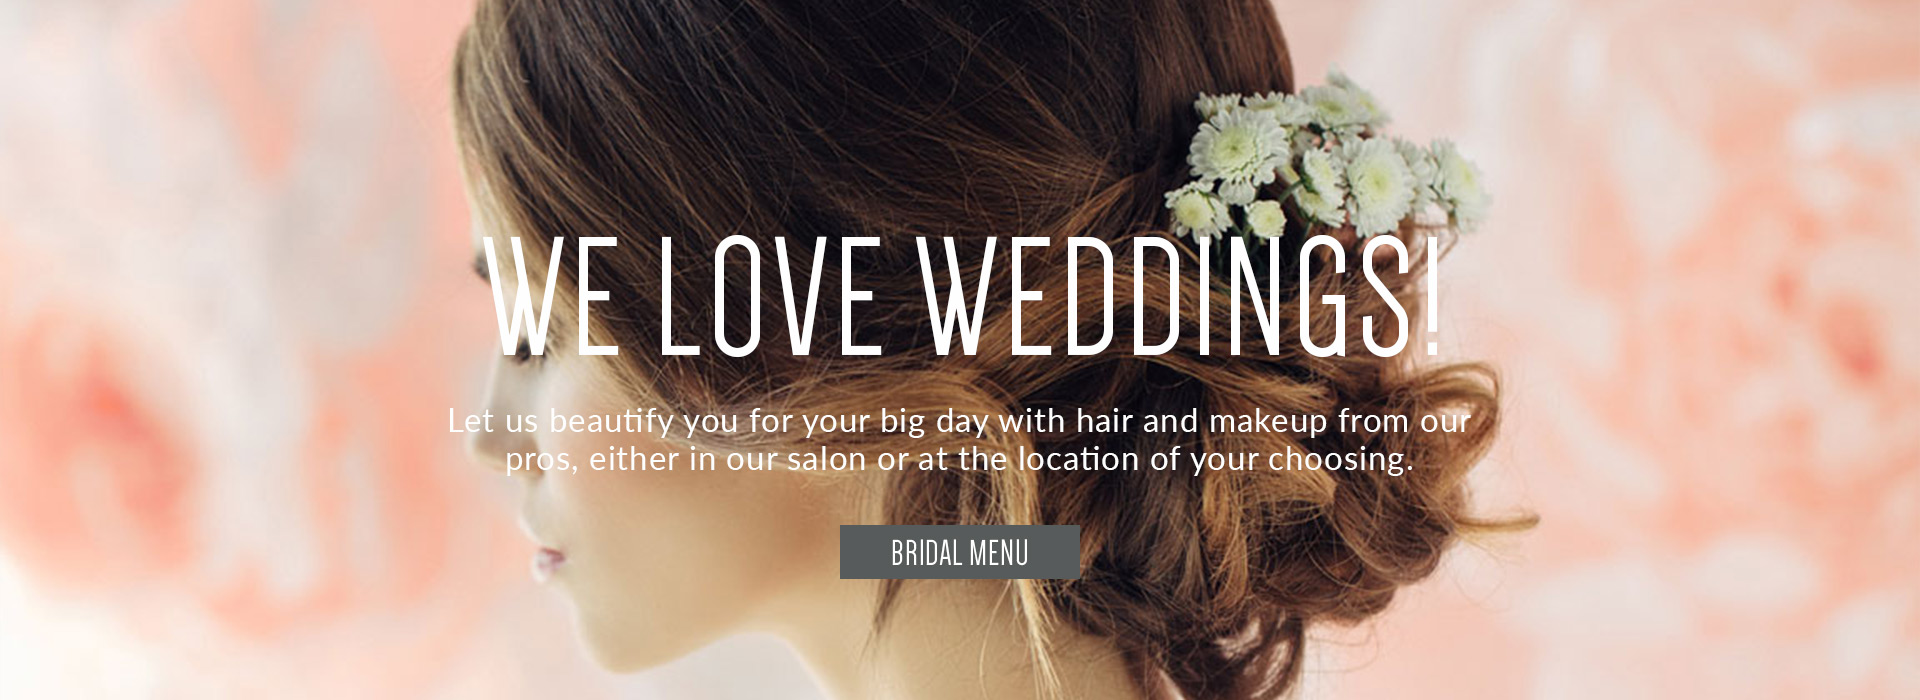 We love wedding. Bridal Hair and Makeup from our pros. Click to view our bridal menu